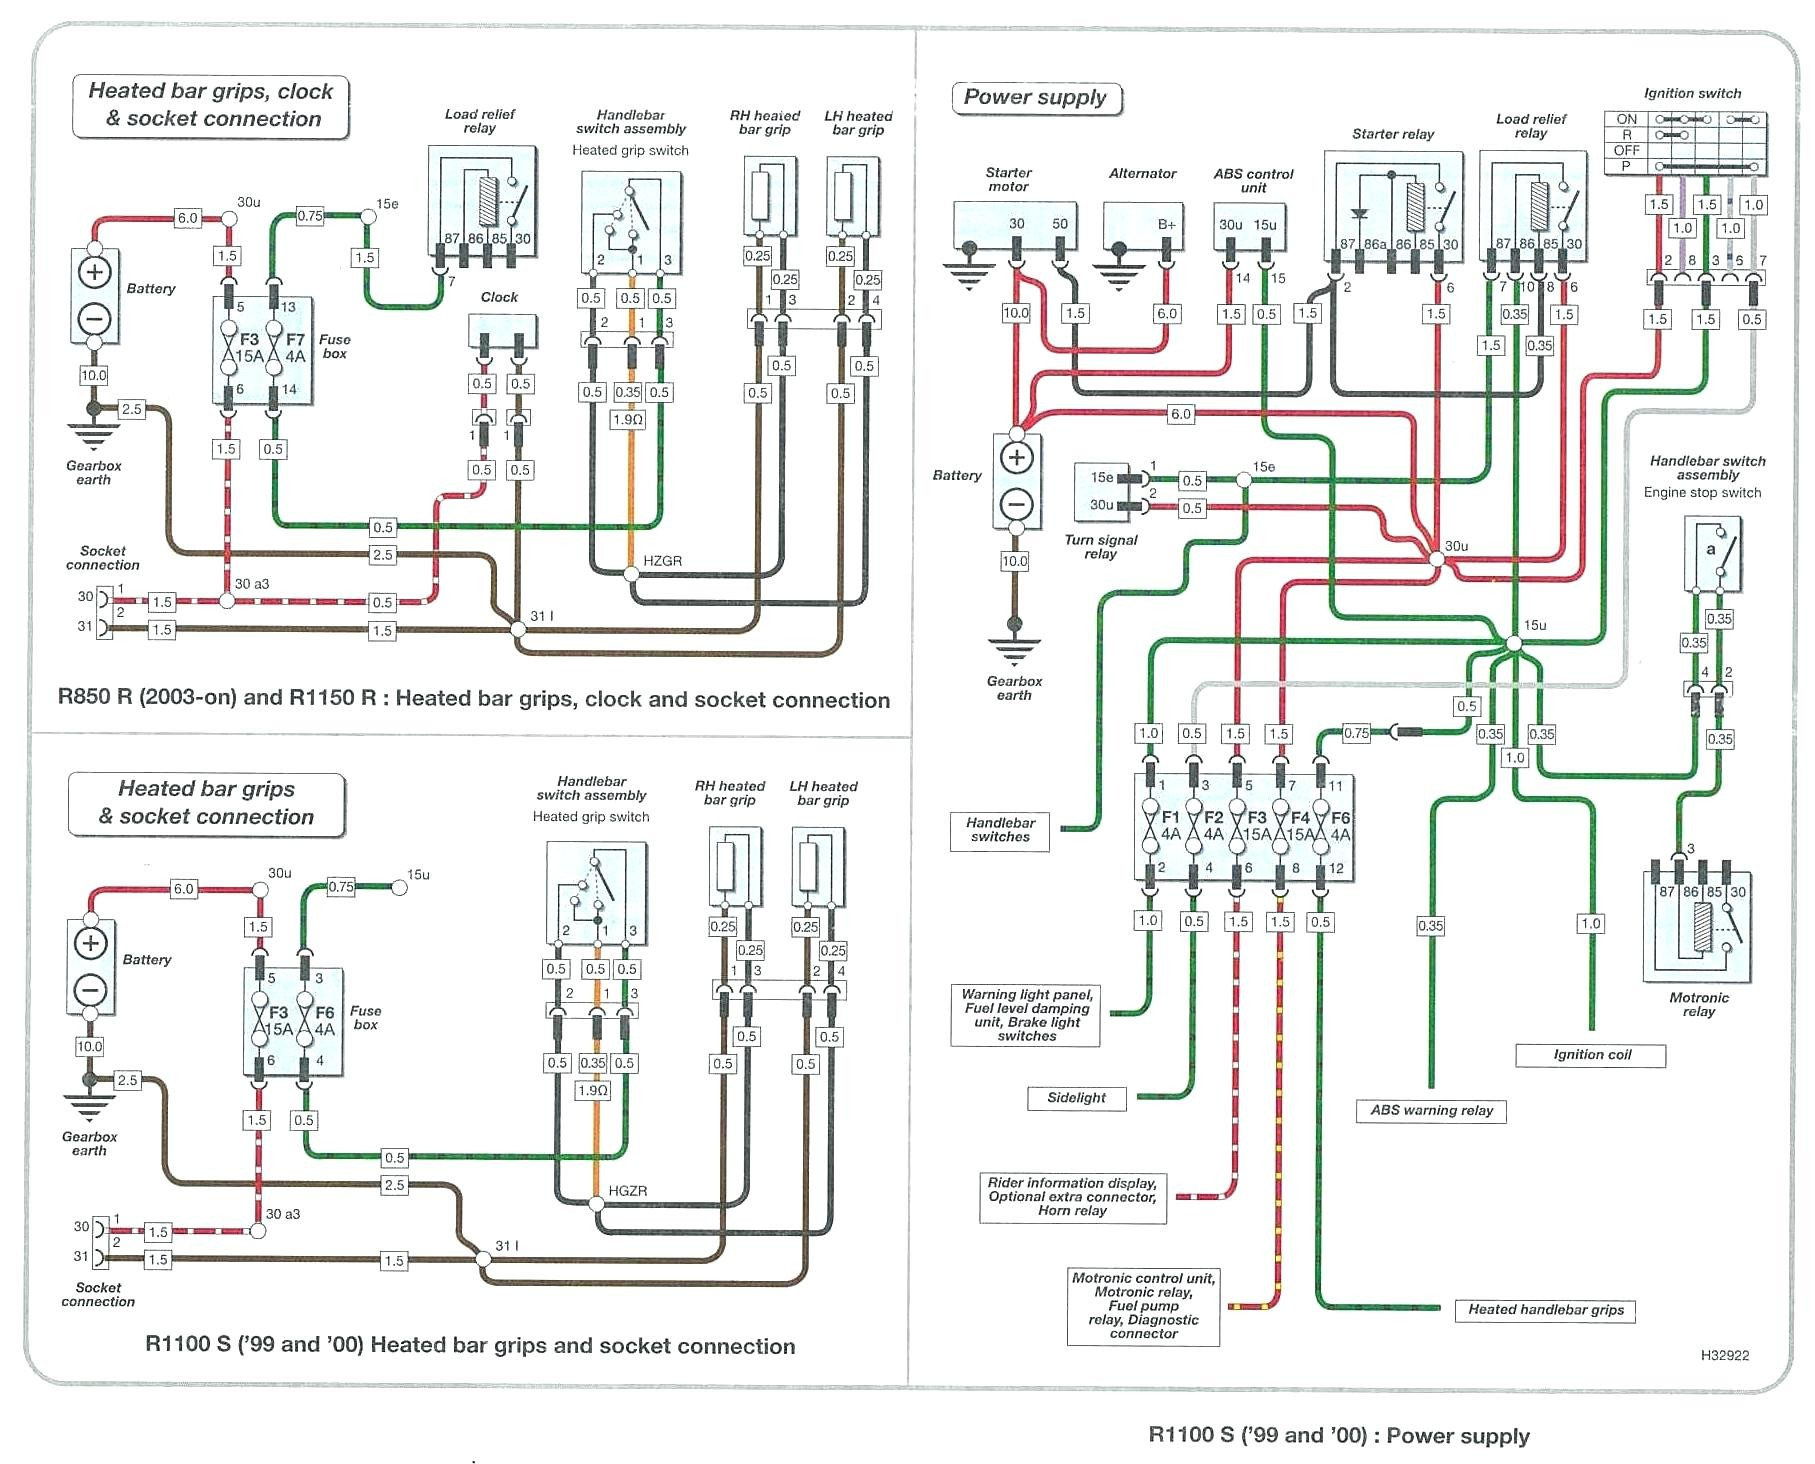 Cummins Isx Engine Diagram Ecm Wiring Schematic Cool 2001 Gallery Electrical And